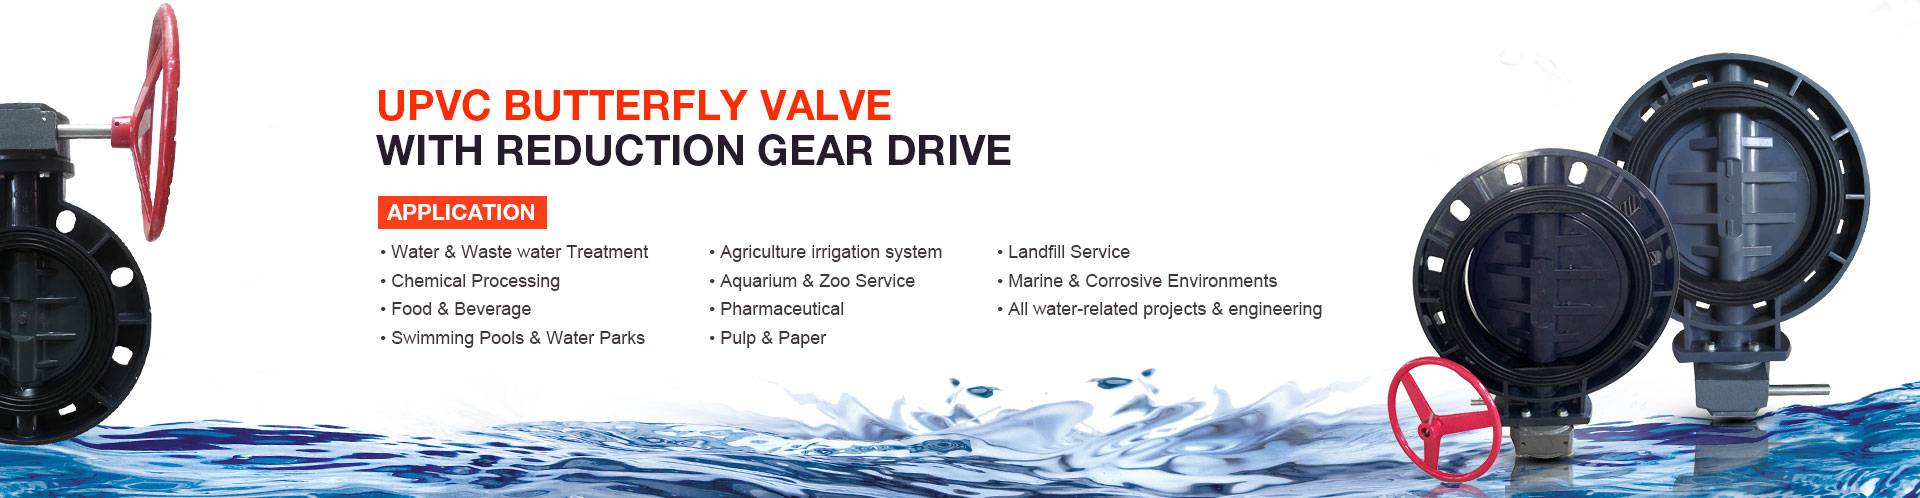 UPVC-Butterfly-Valve-with-Reduction-Gear-Drive